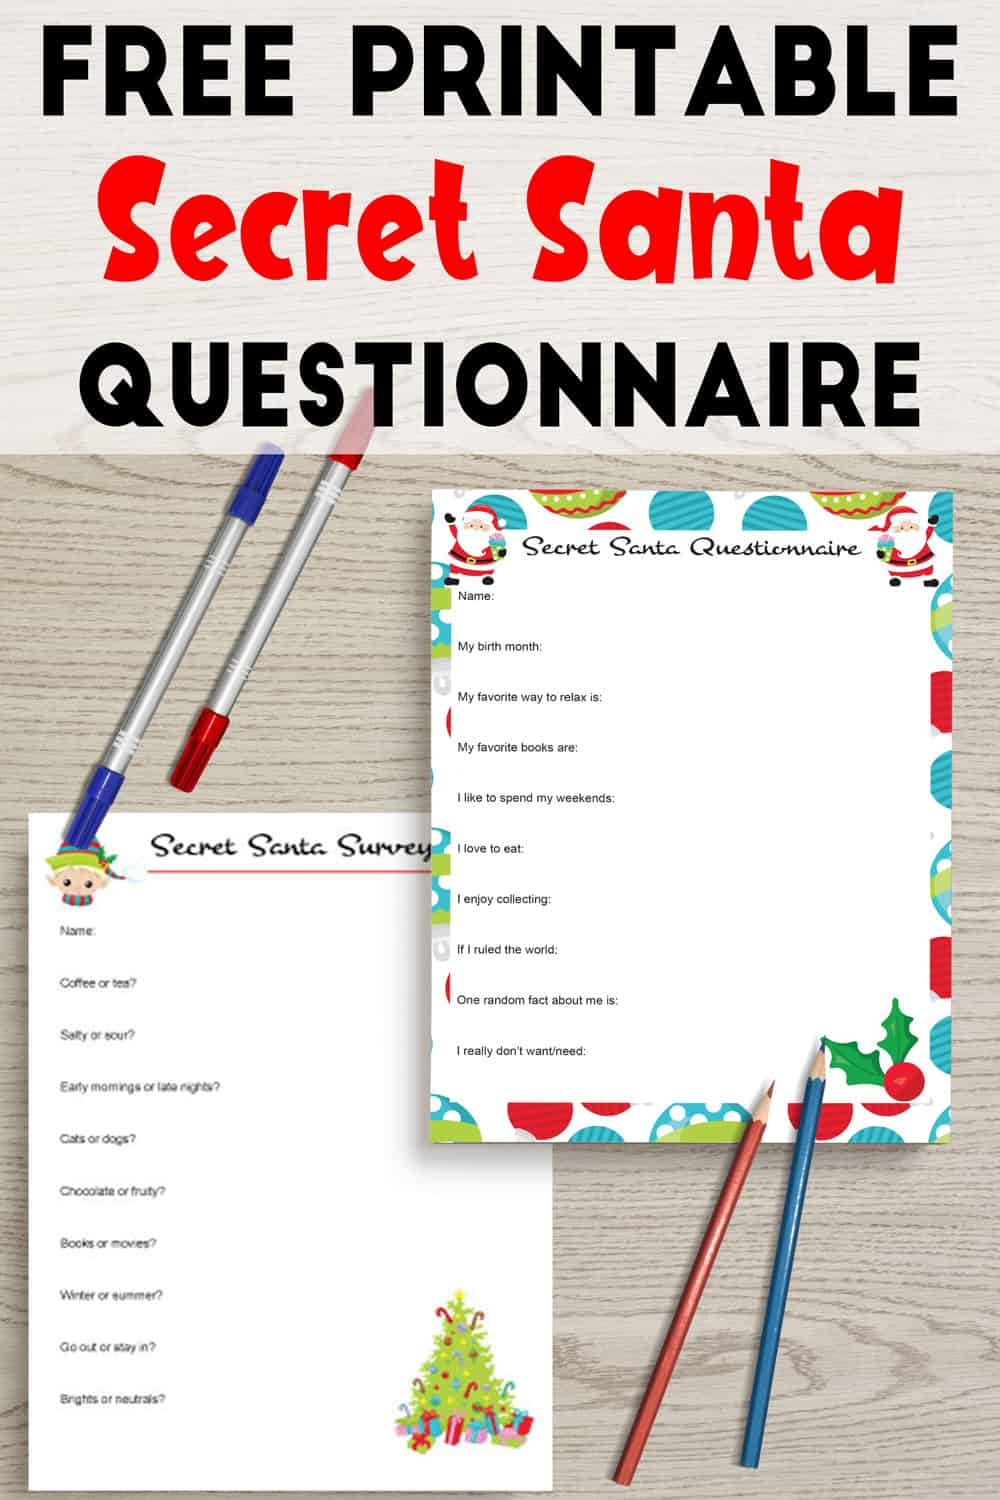 free-printable-secret-santa-questionnaire